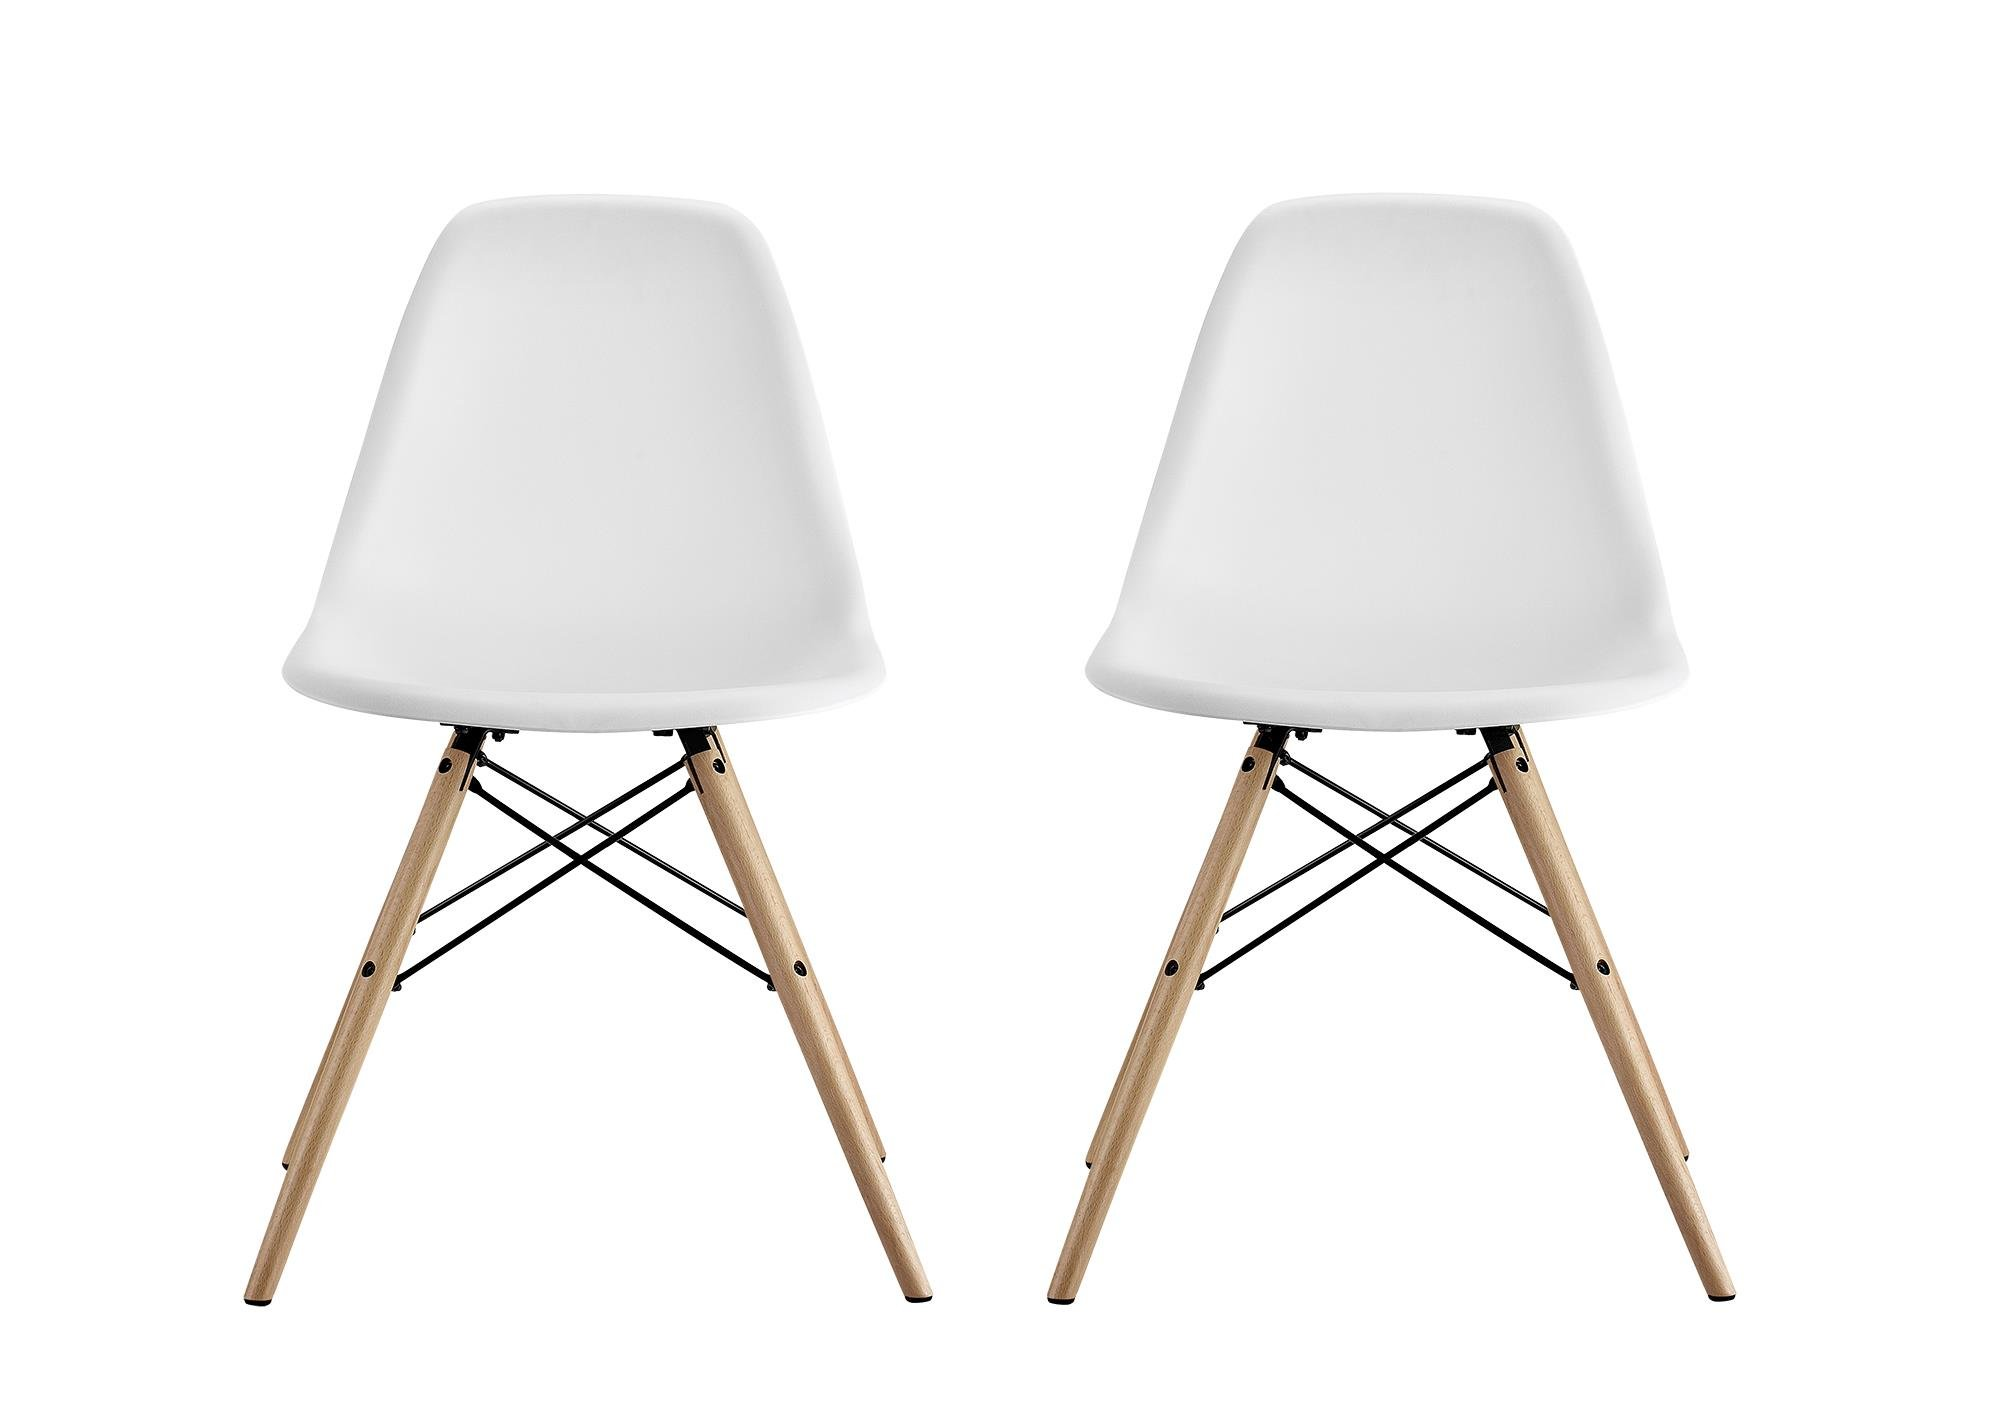 DHP Mid Century Modern Chair with Wood Legs, Set of Two, Lightweight, White by DHP (Image #1)